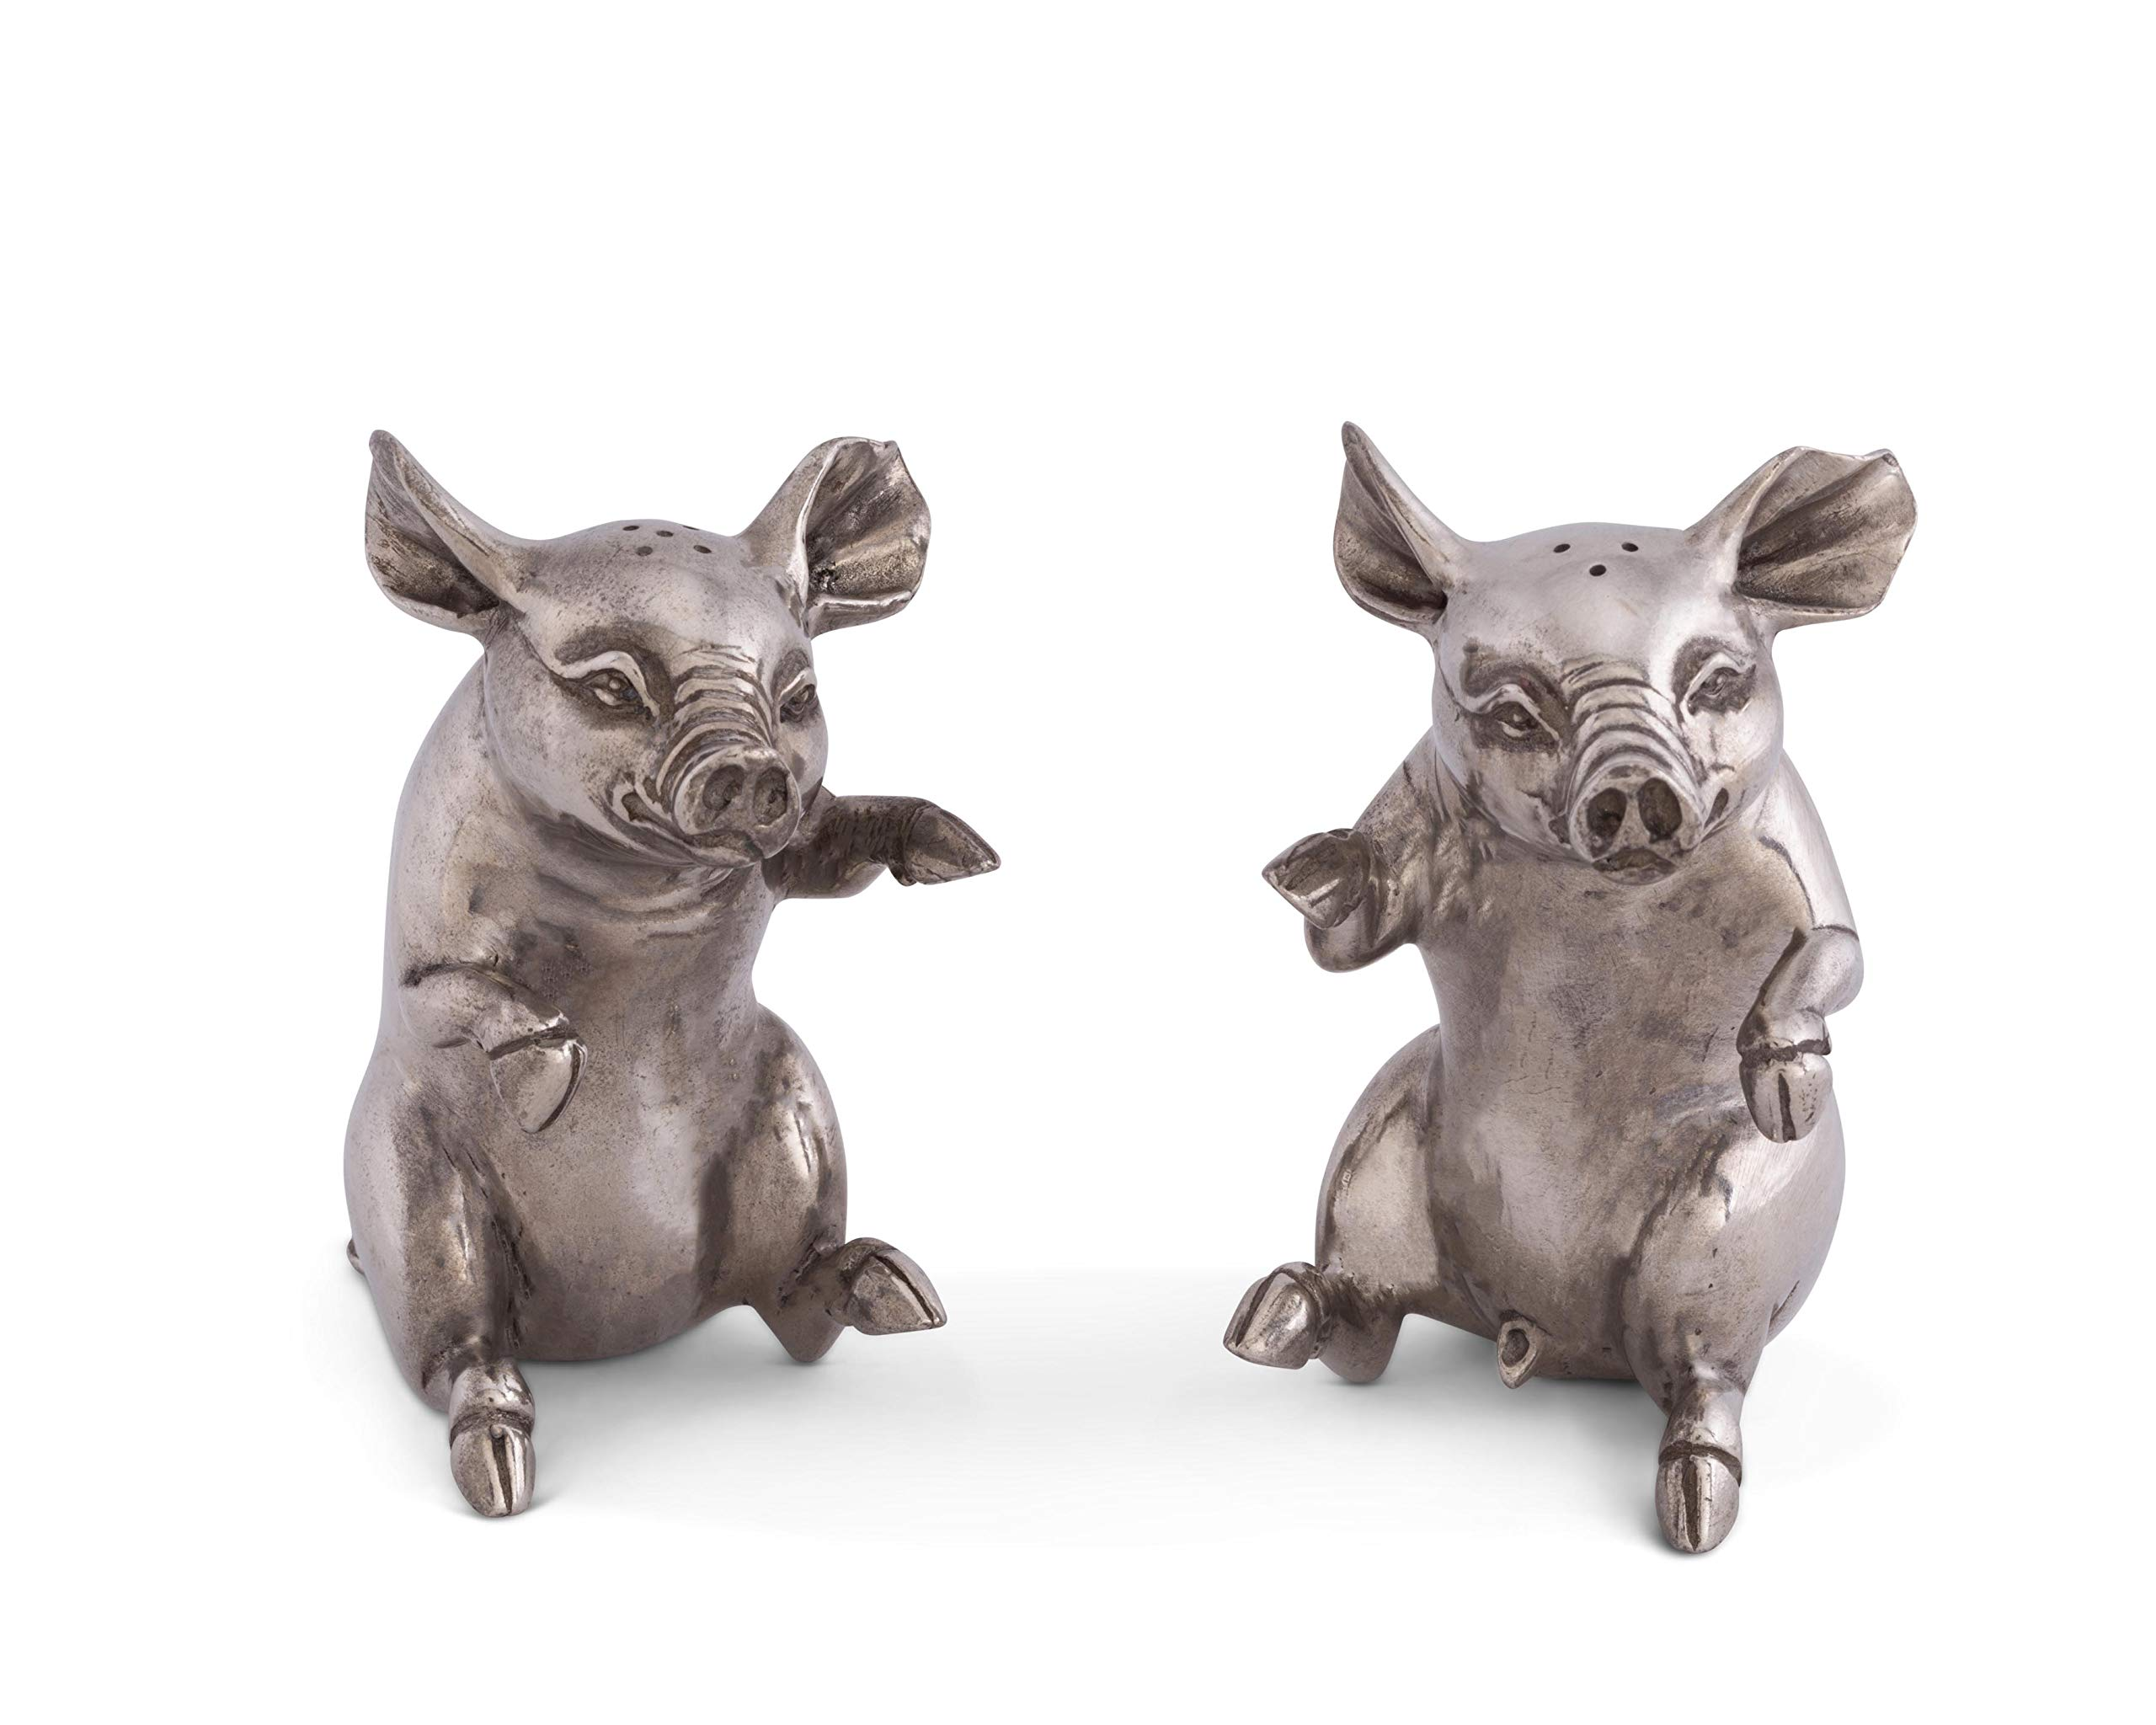 Vagabond House Happy Pewter Pigs Salt and Pepper Shaker Set, 4'' Tall by Vagabond House